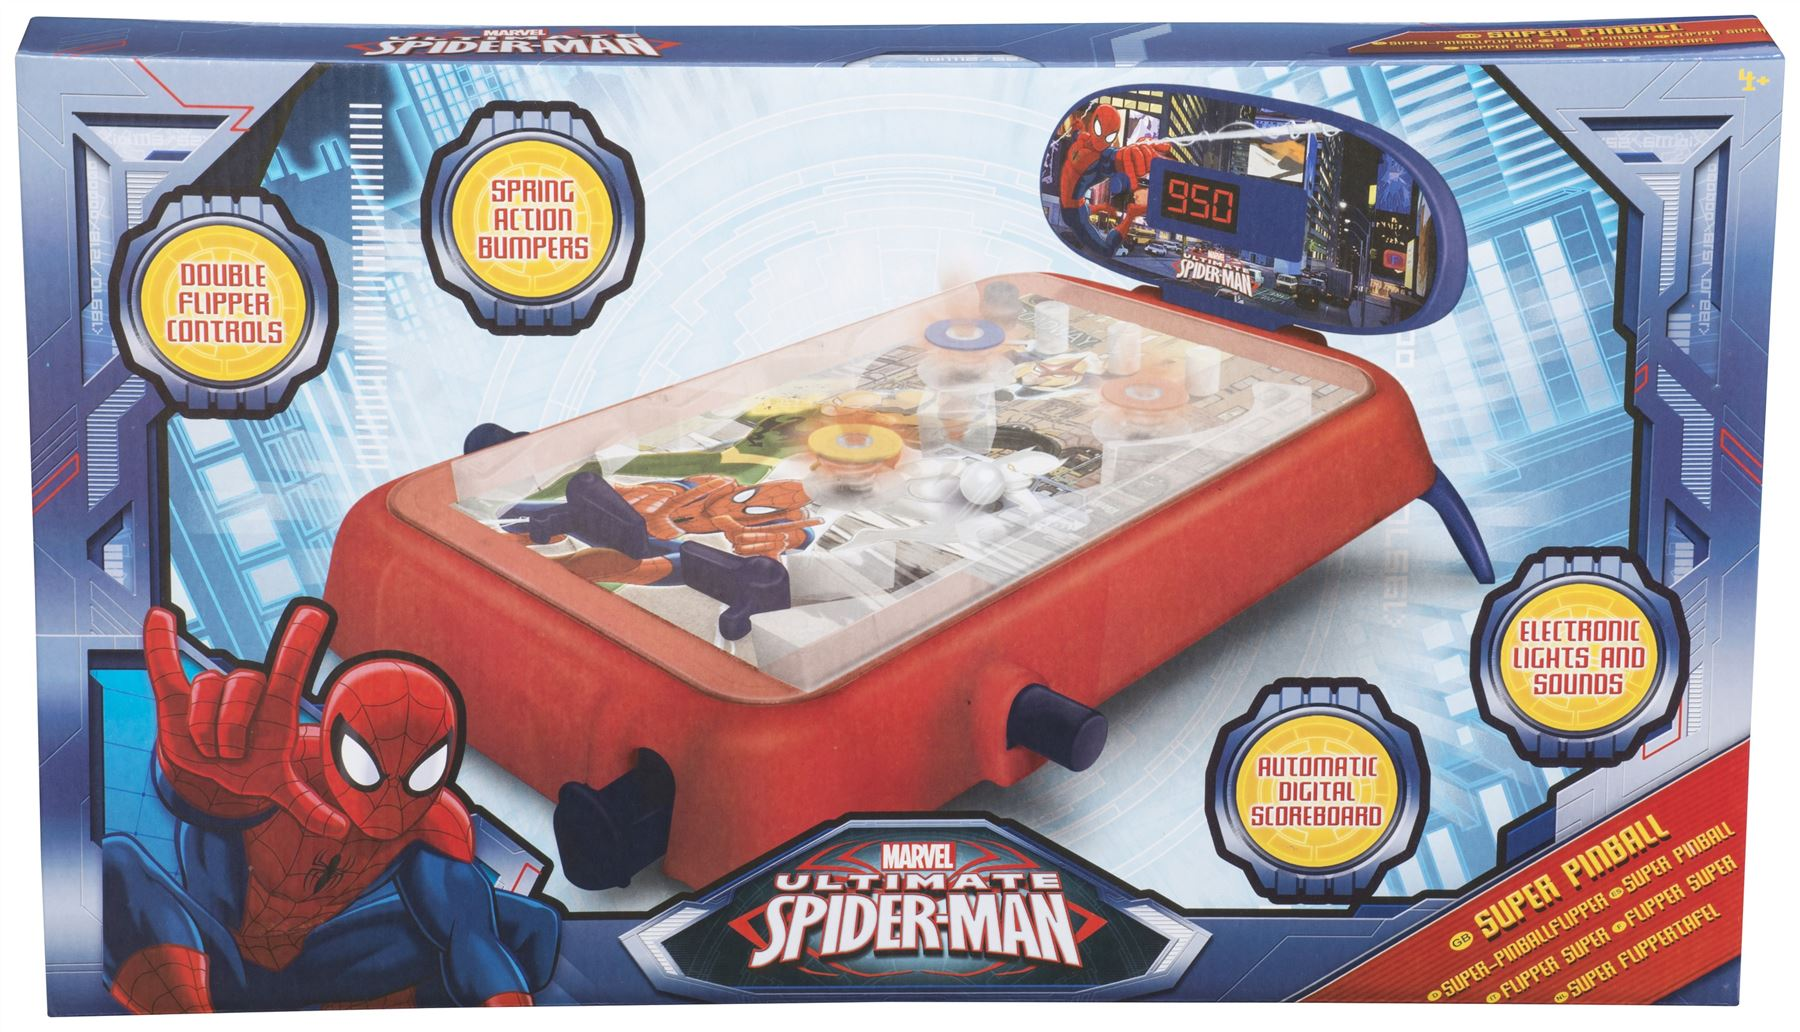 Sambro Ultimate Spiderman Super Pinball (Medium) [Toy] | eBay